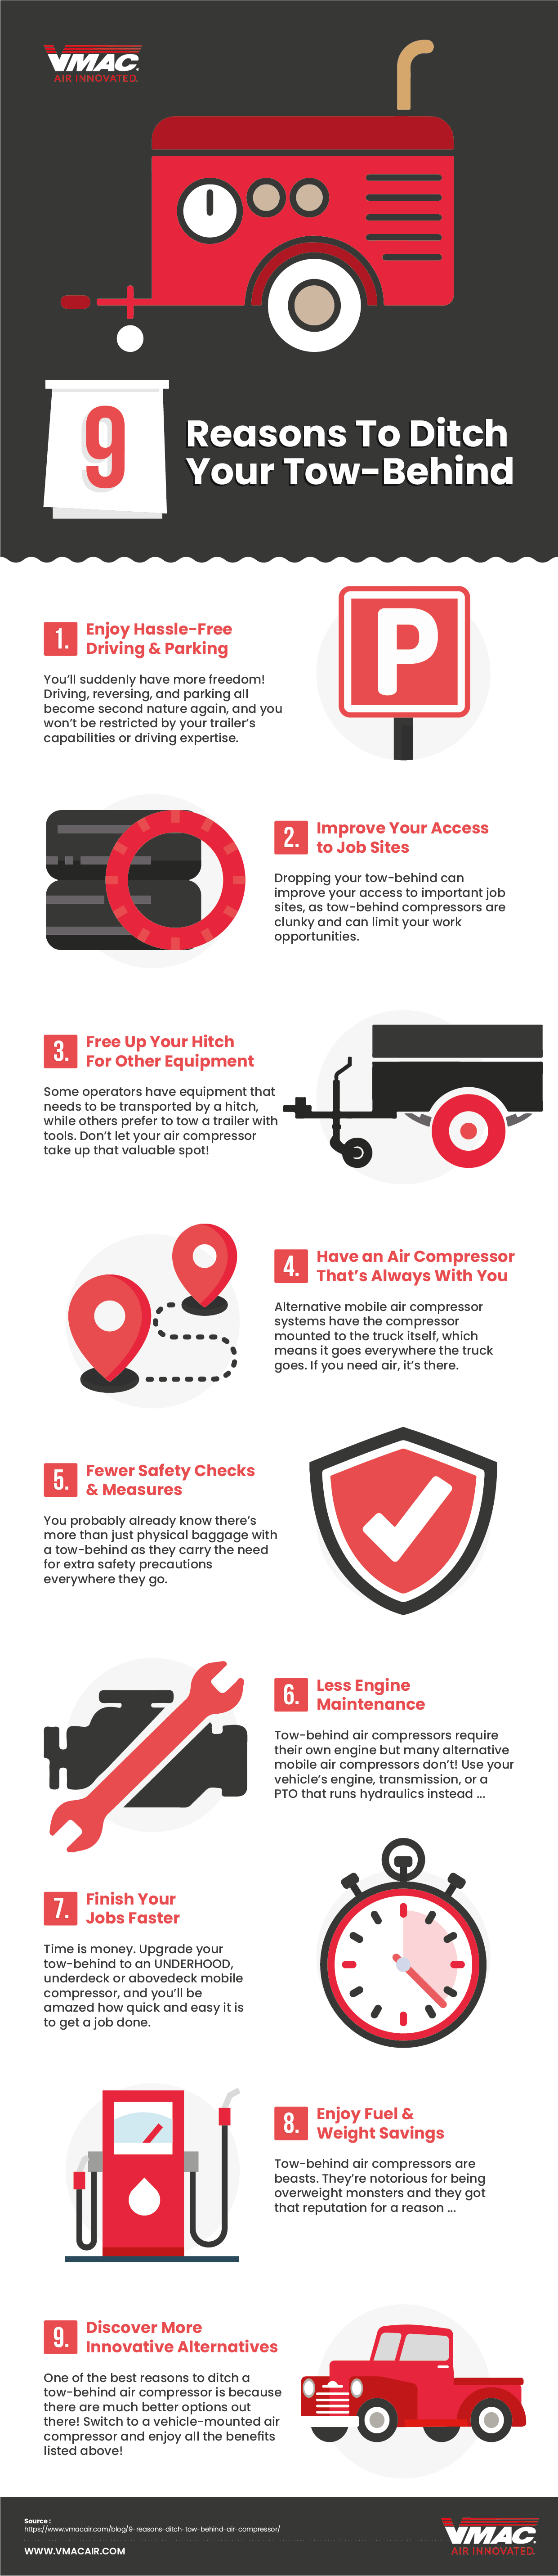 ditch tow-behind infographic